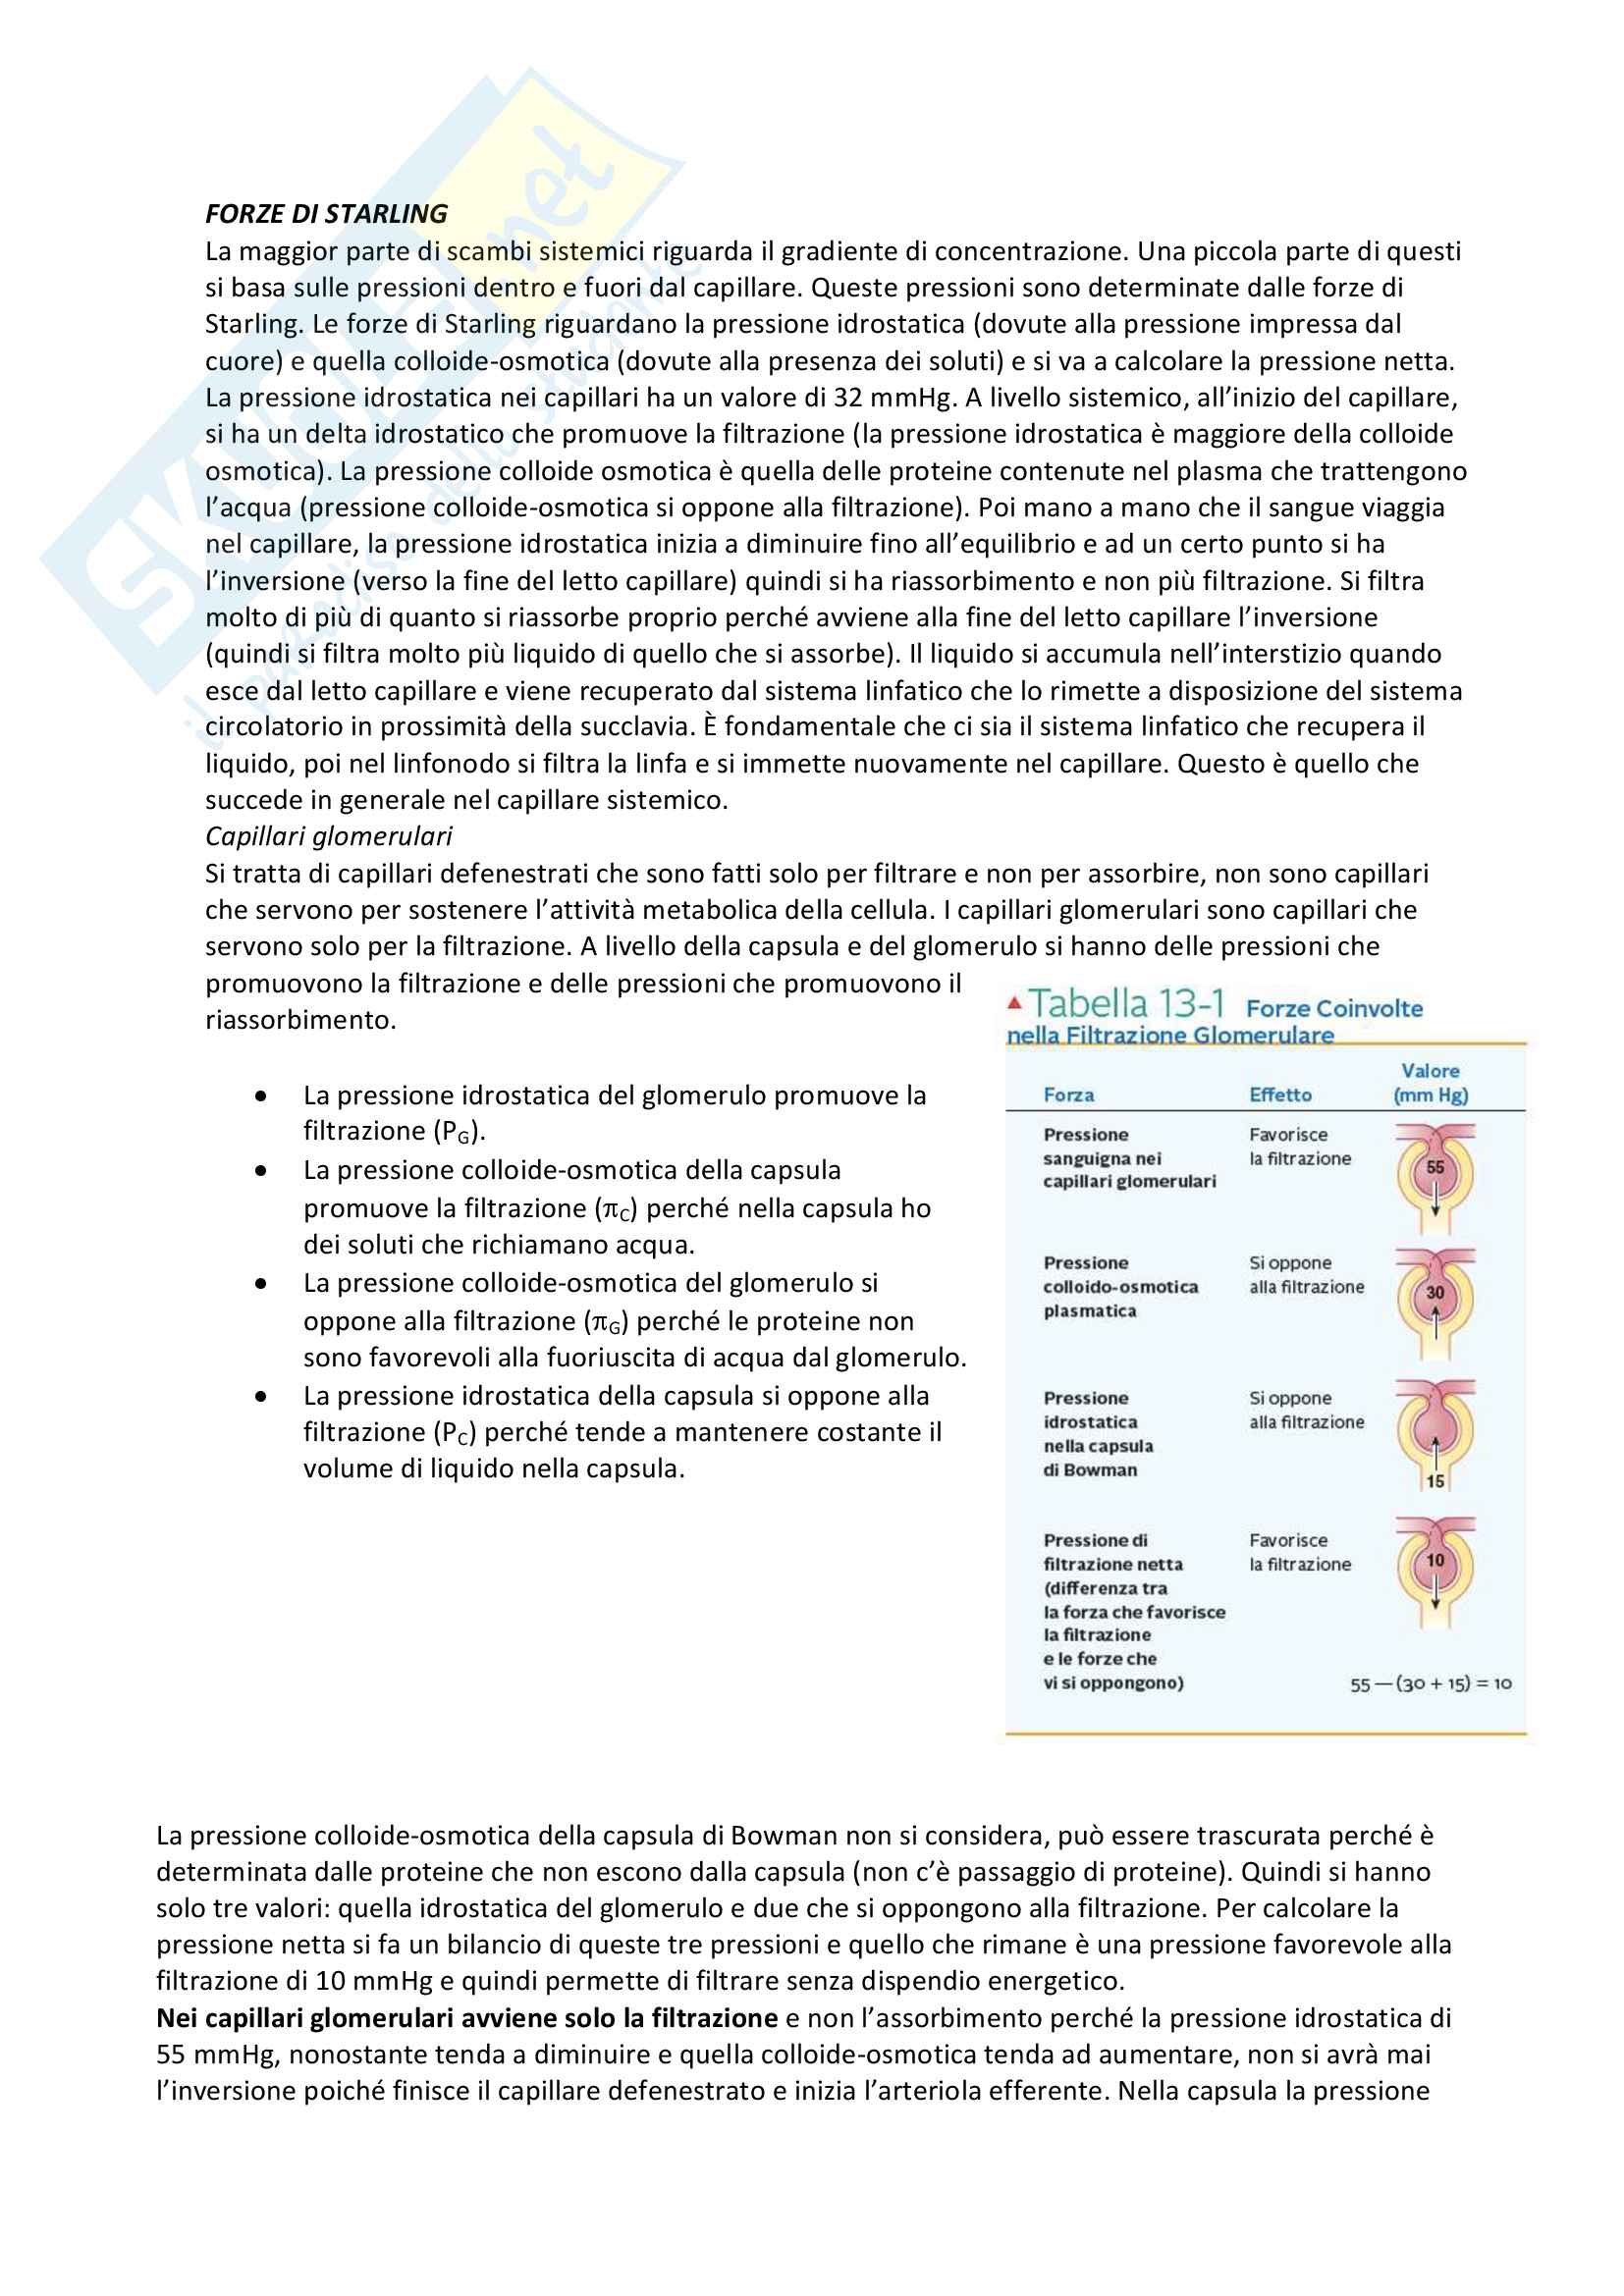 Fisiologia Pag. 46